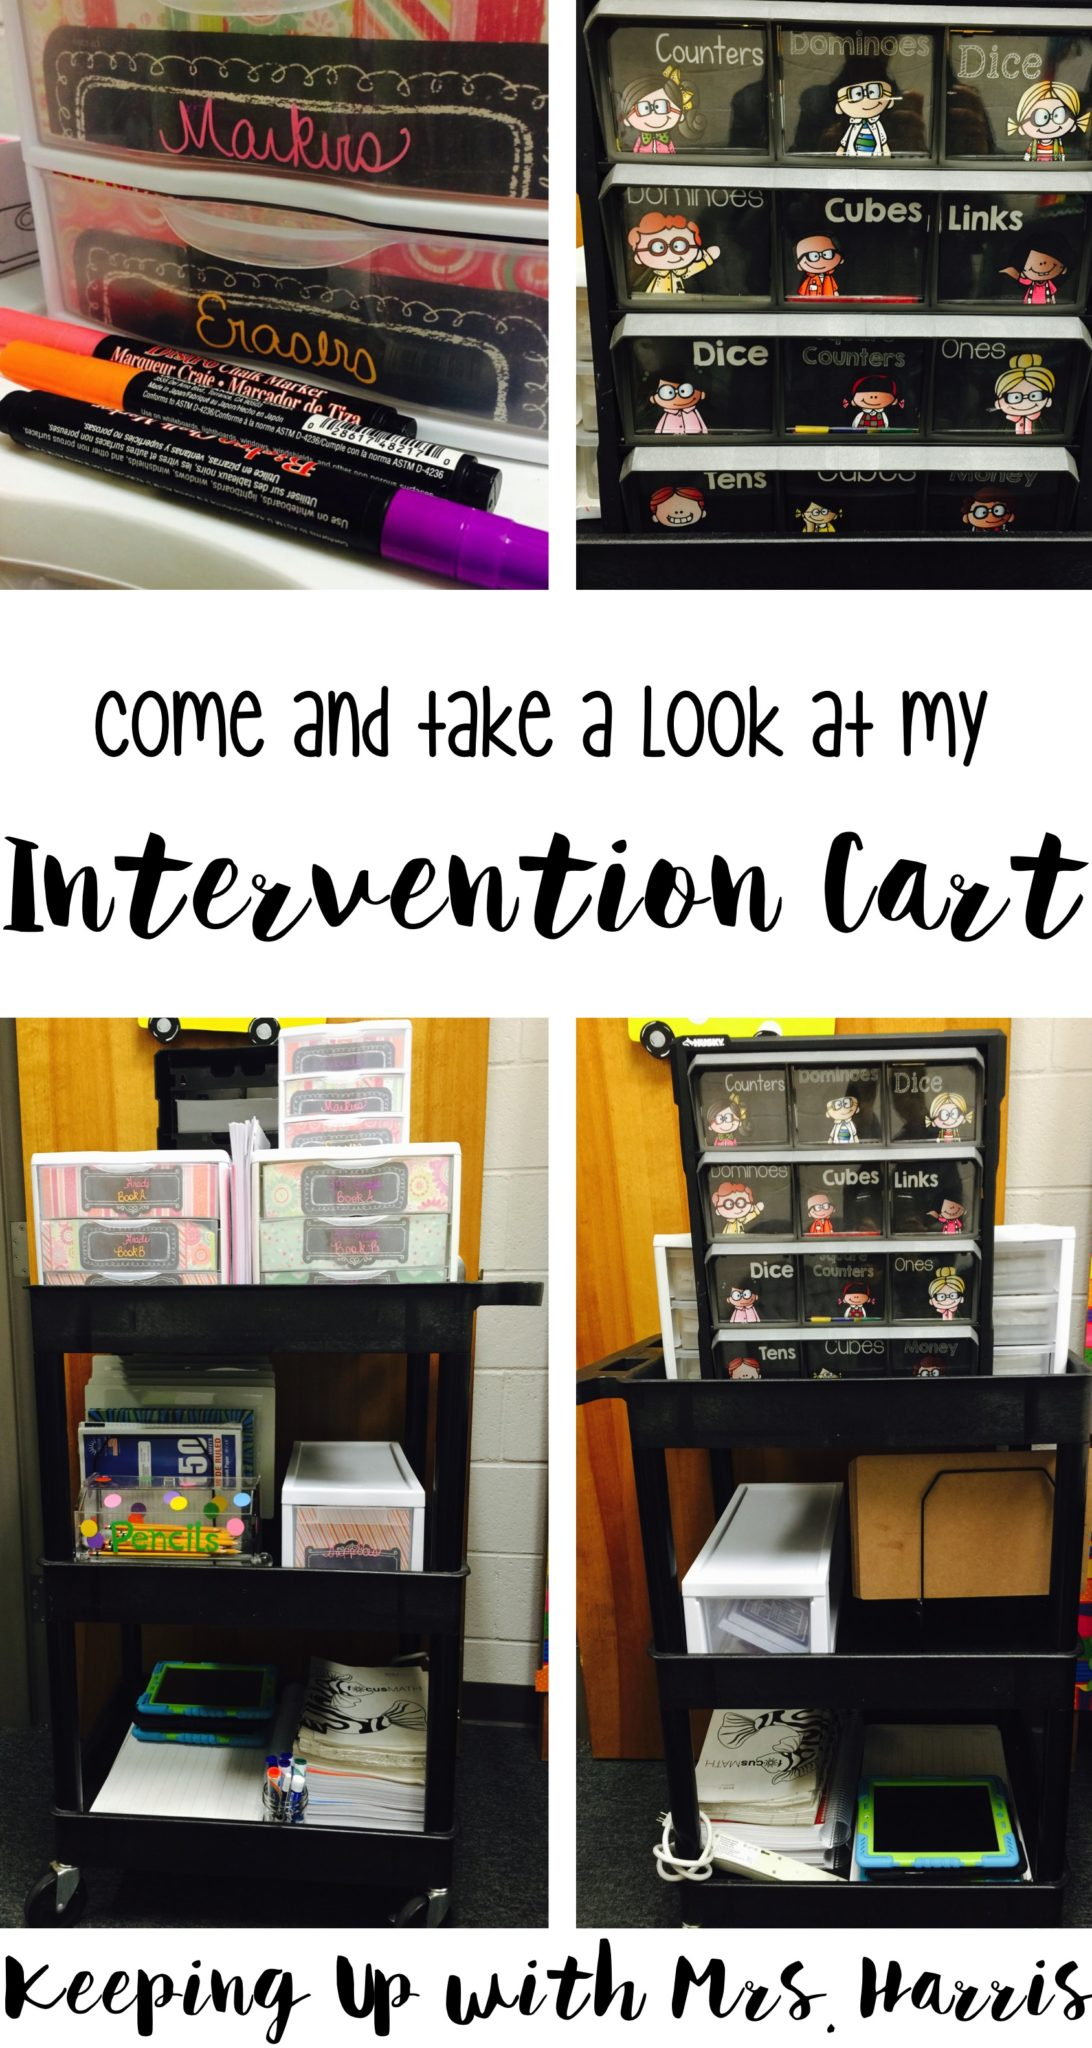 What's on the Intervention Cart?